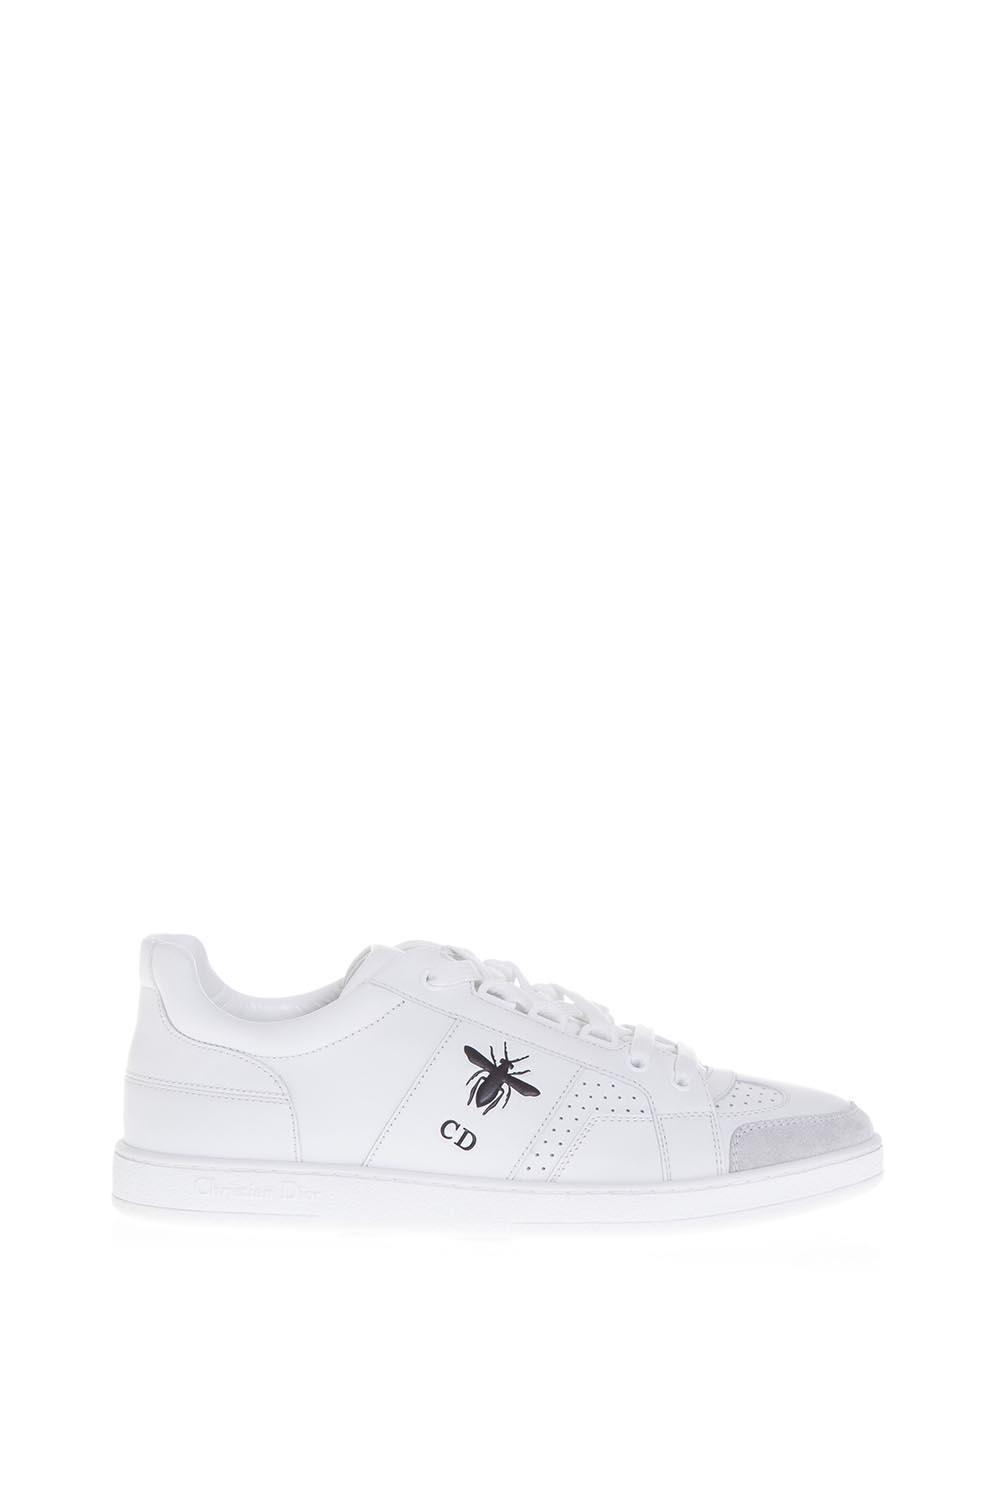 Dior Leather Cd Bee Sneakers in White